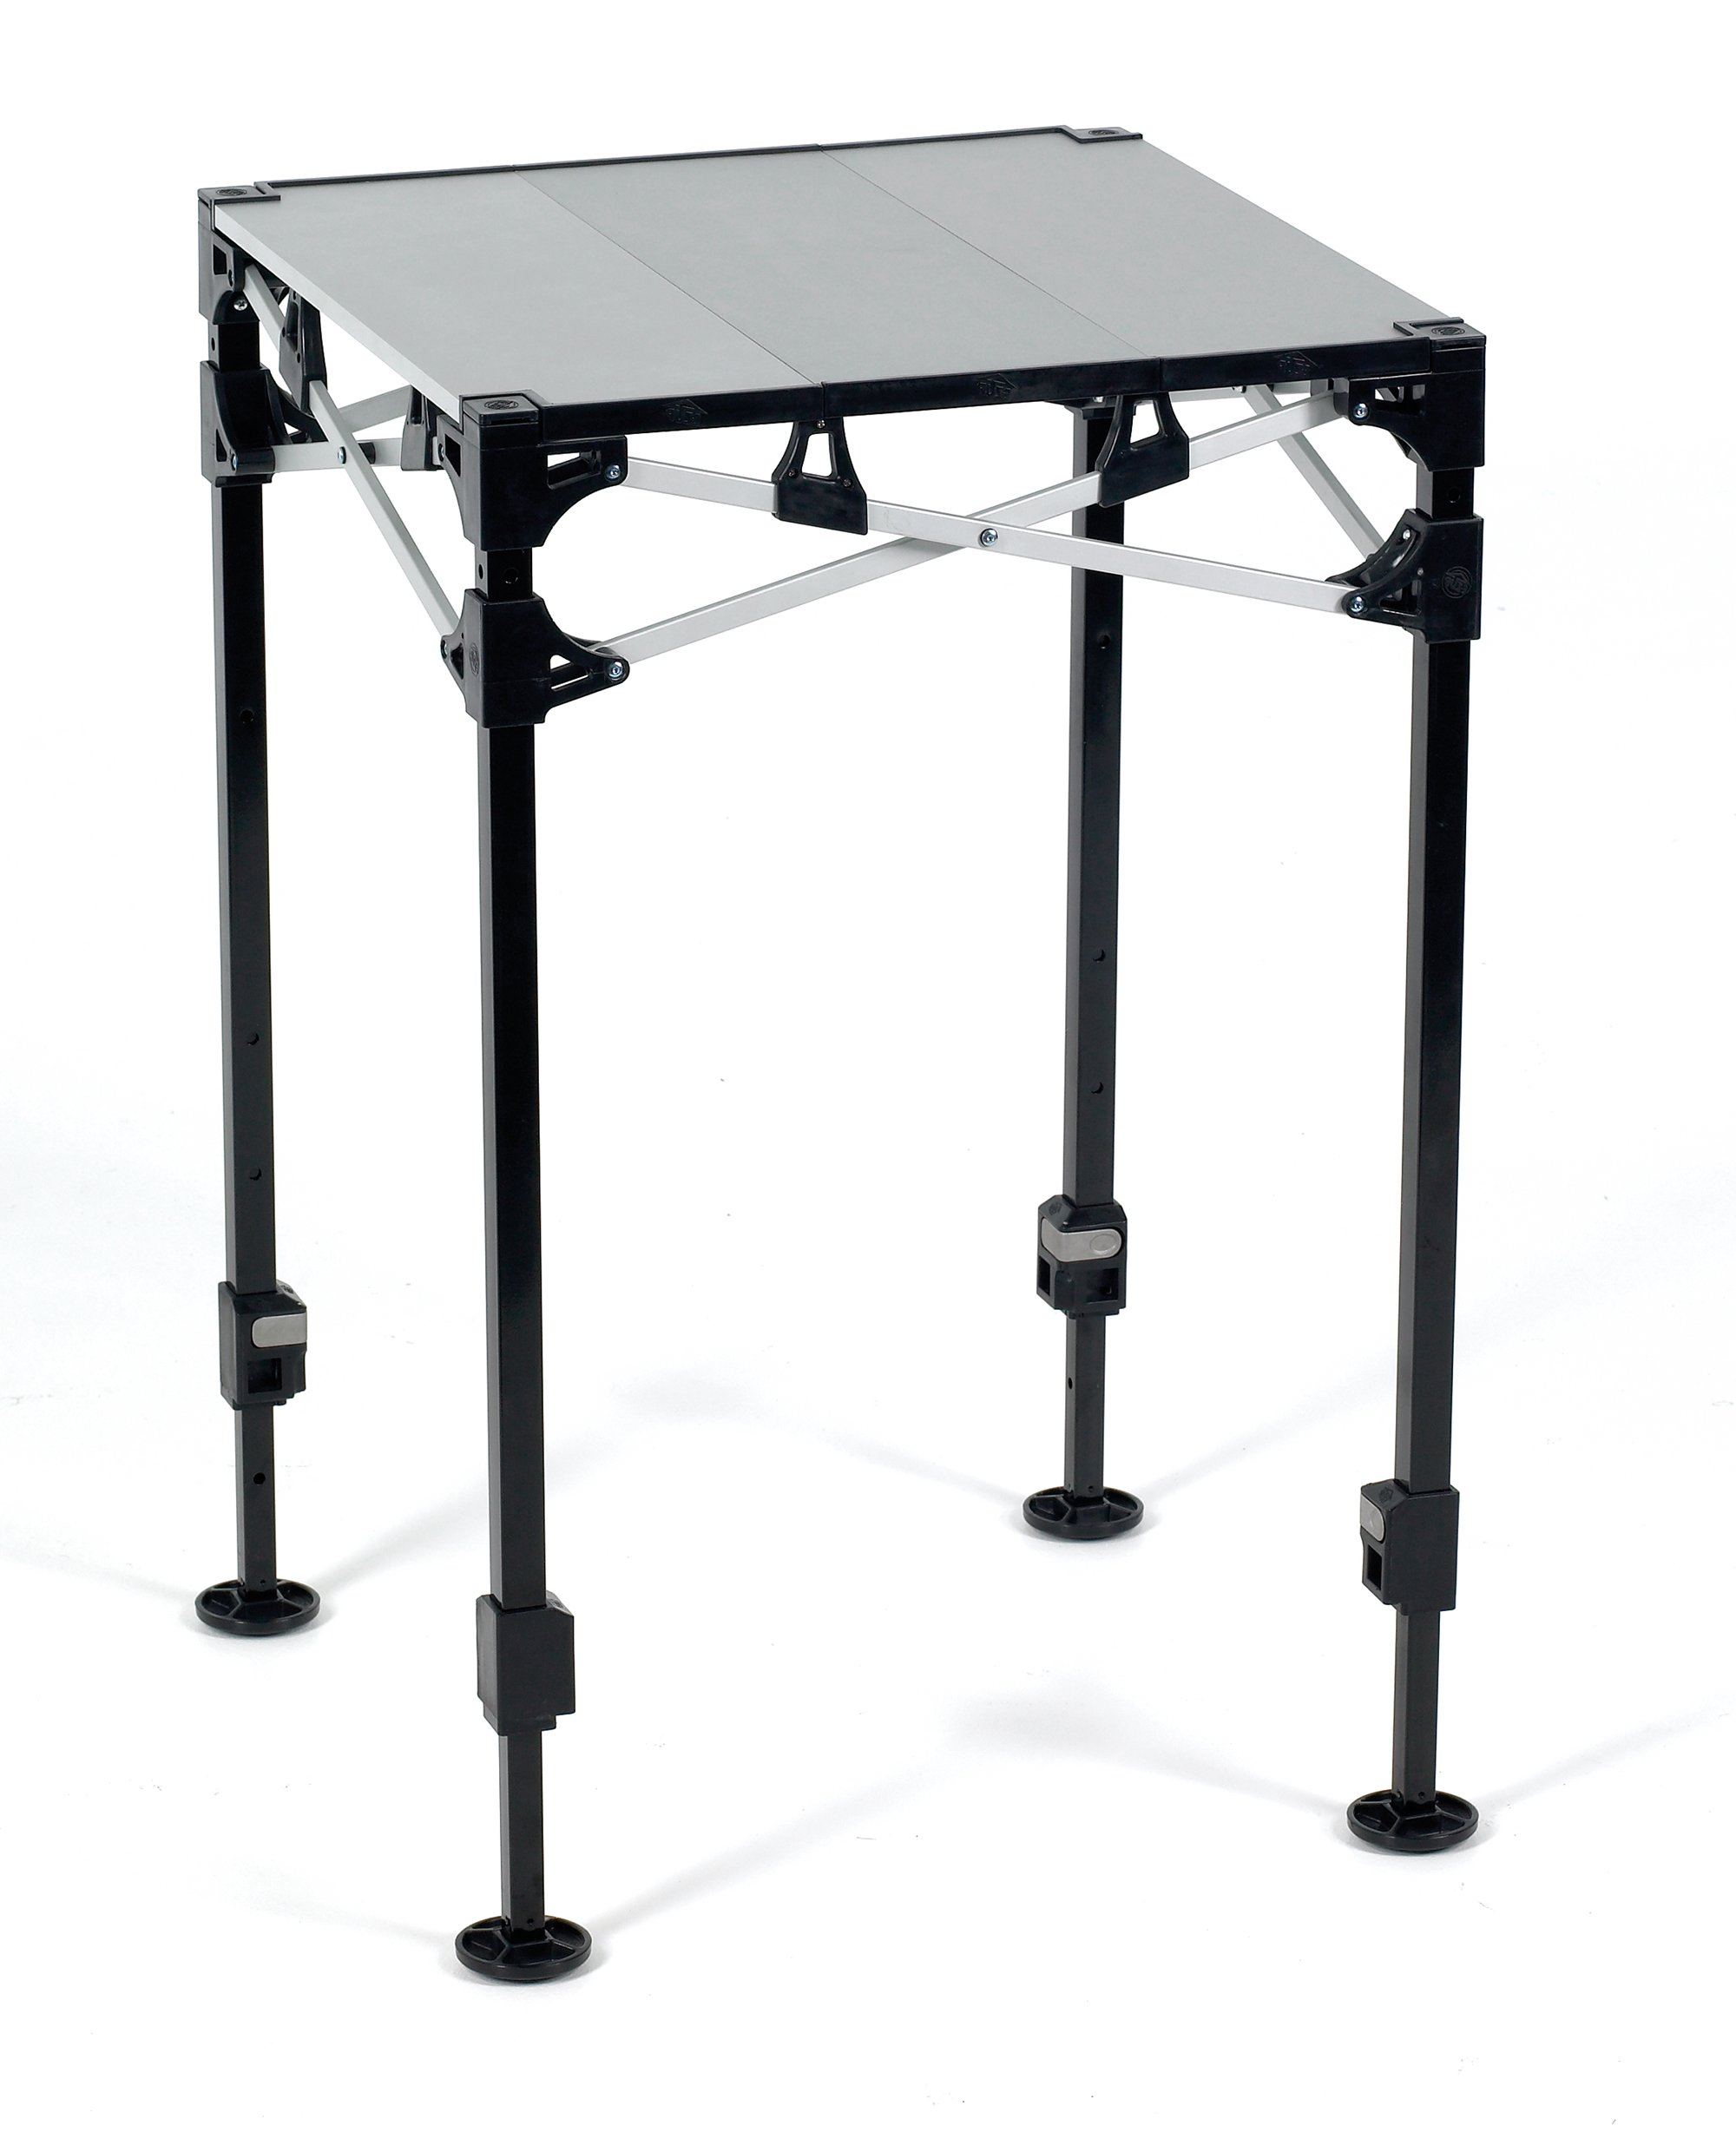 E-Z UP Instant Table System, 2 by 2' by E-Z UP (Image #1)